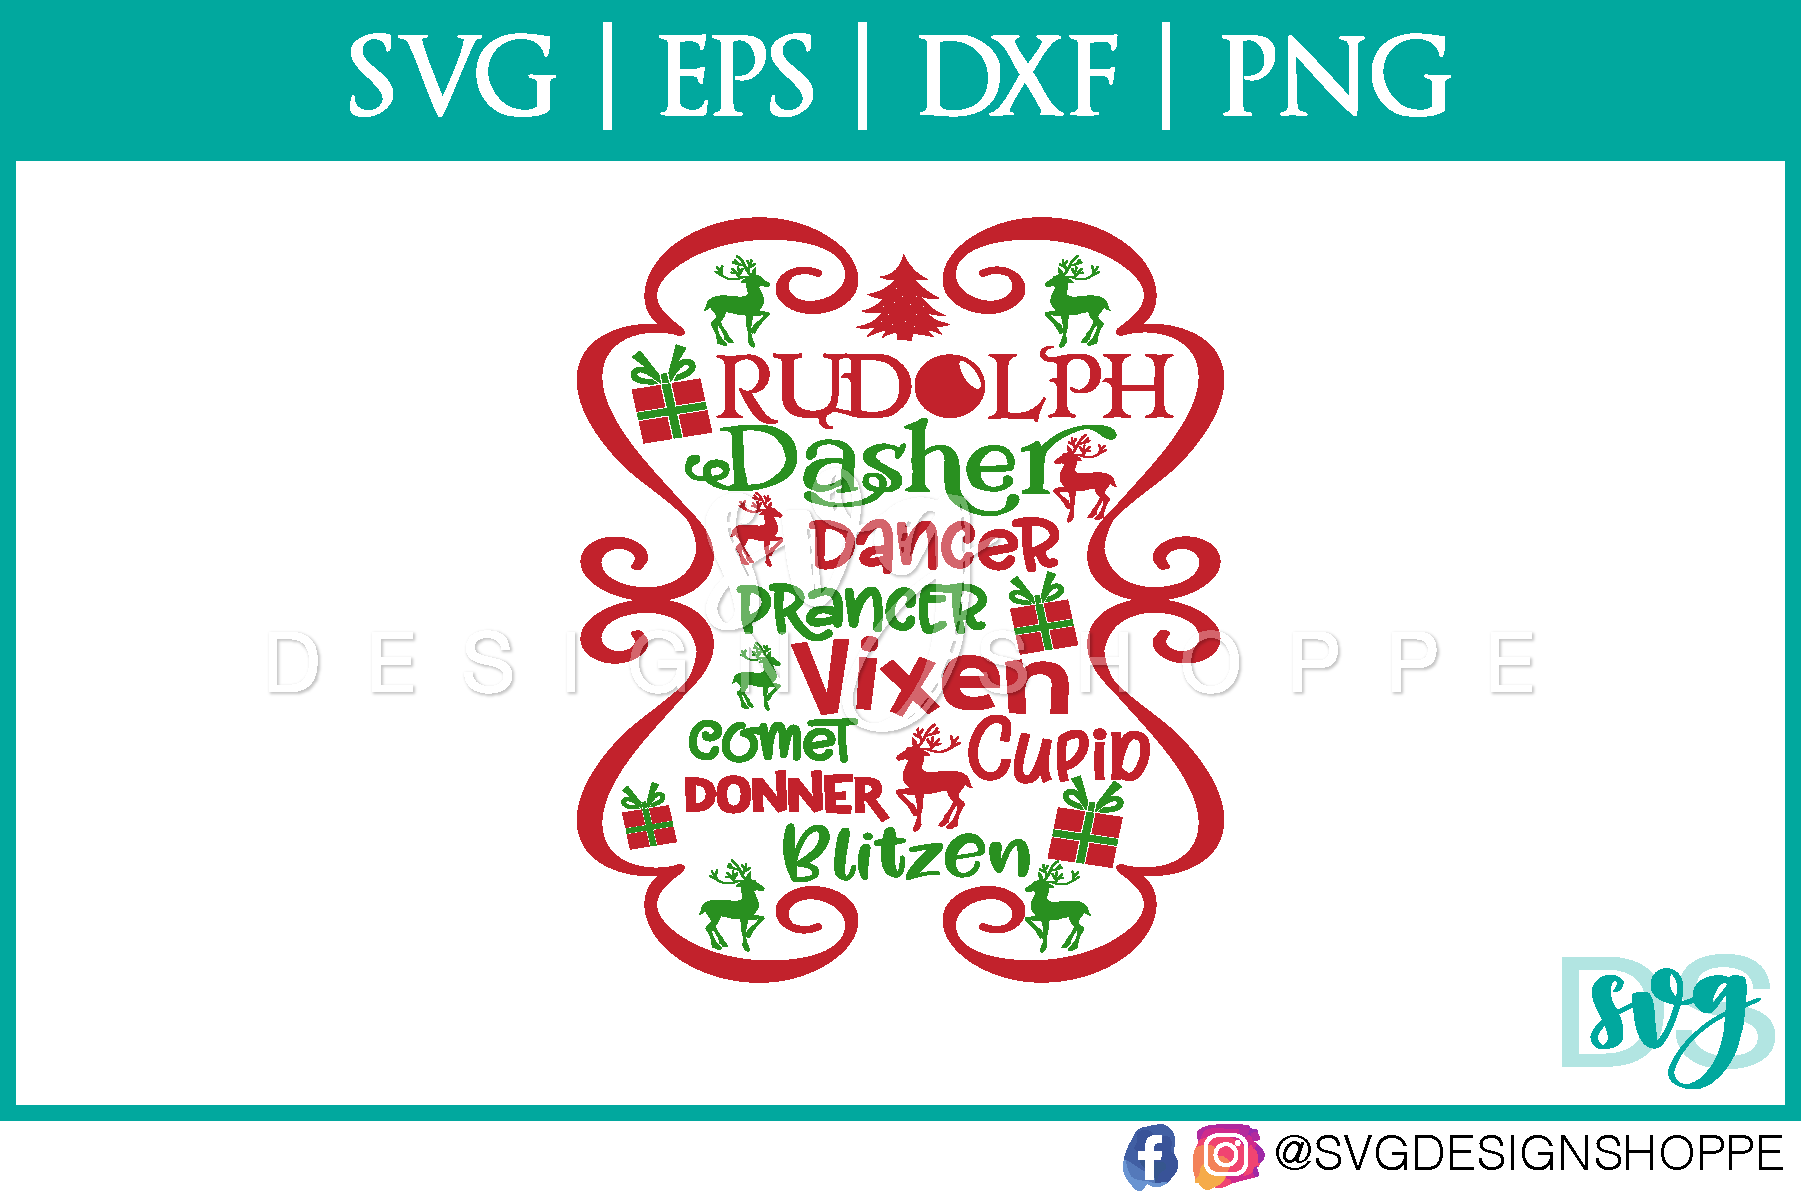 Christmas, Reindeer, SVG, Cricut Designs, DXF, PNG example image 2